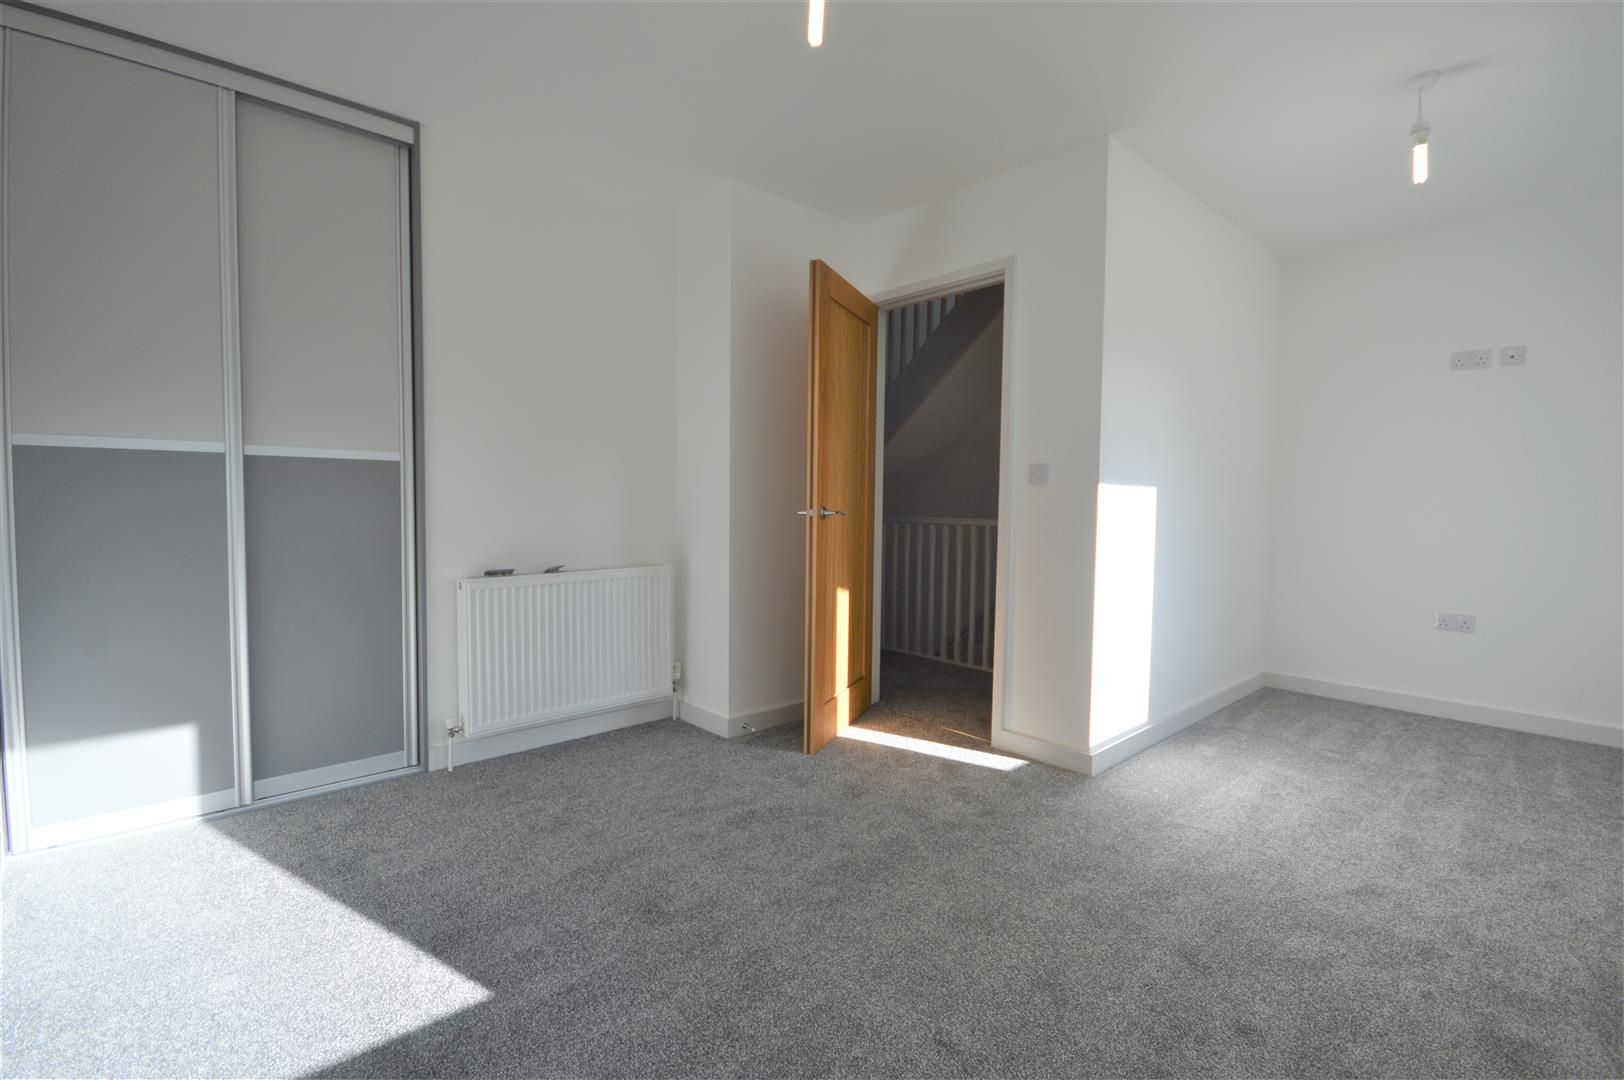 3 bed terraced for sale in Leominster 10